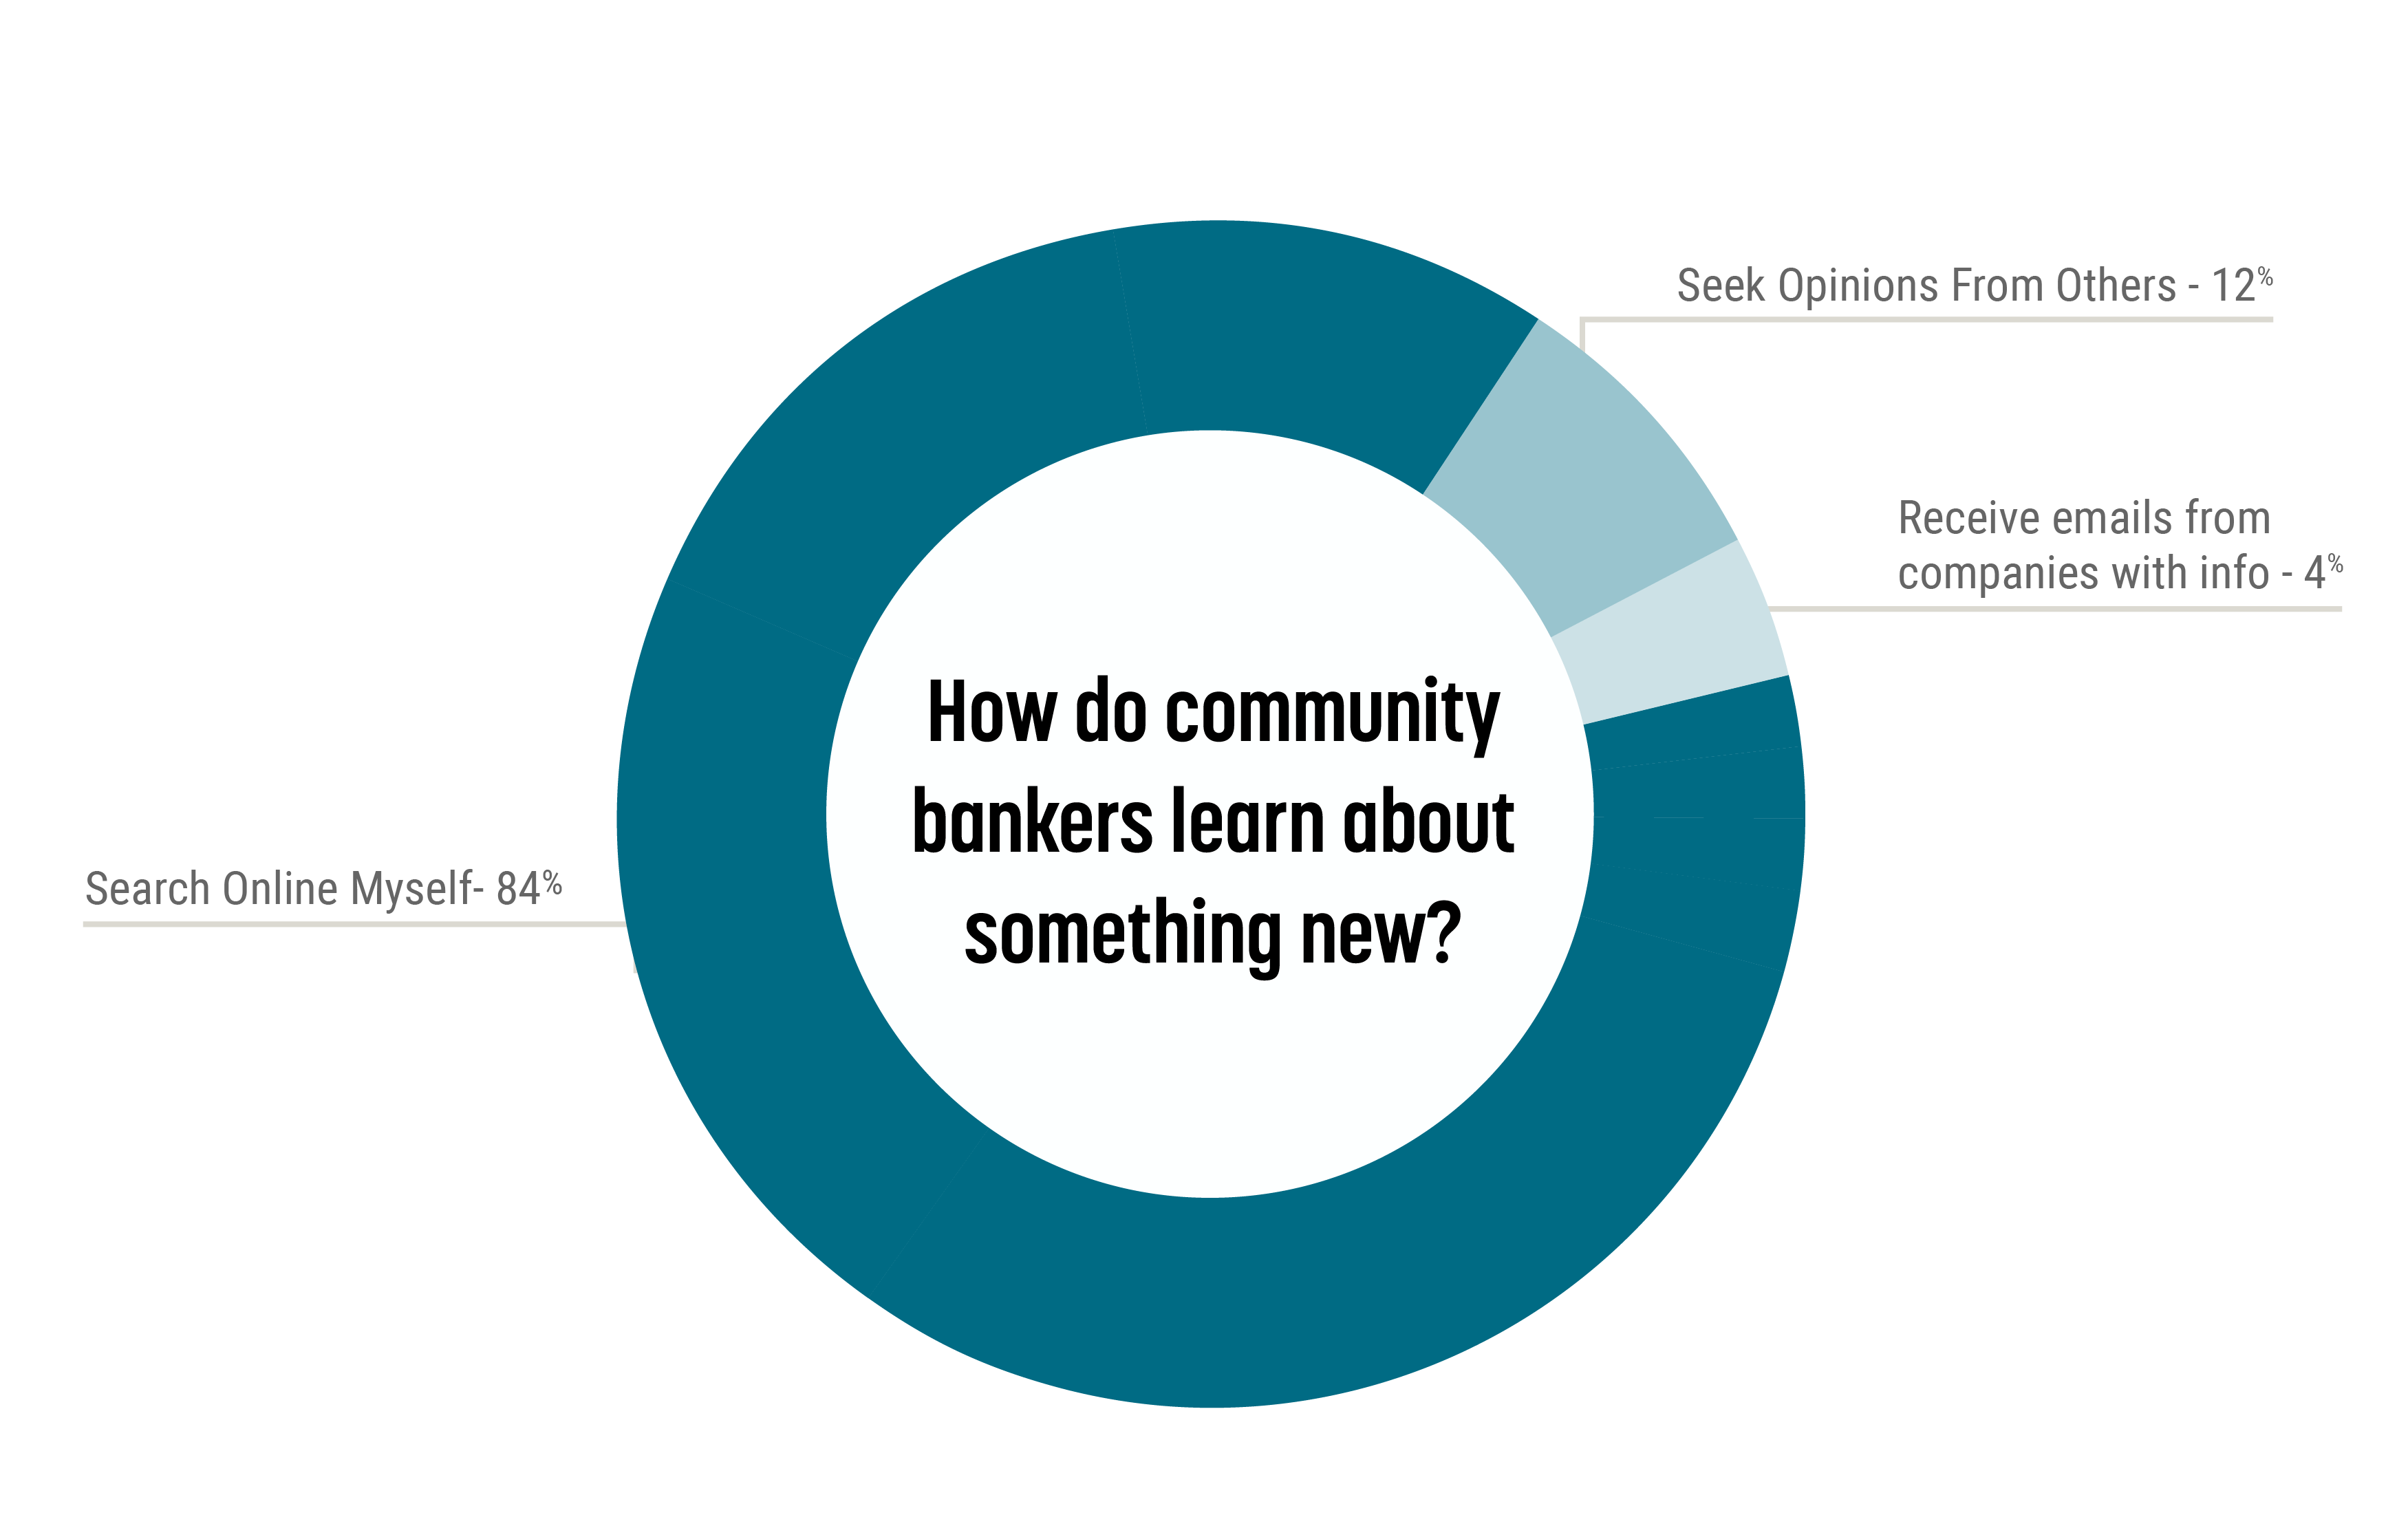 How do community bankers learn about something new?